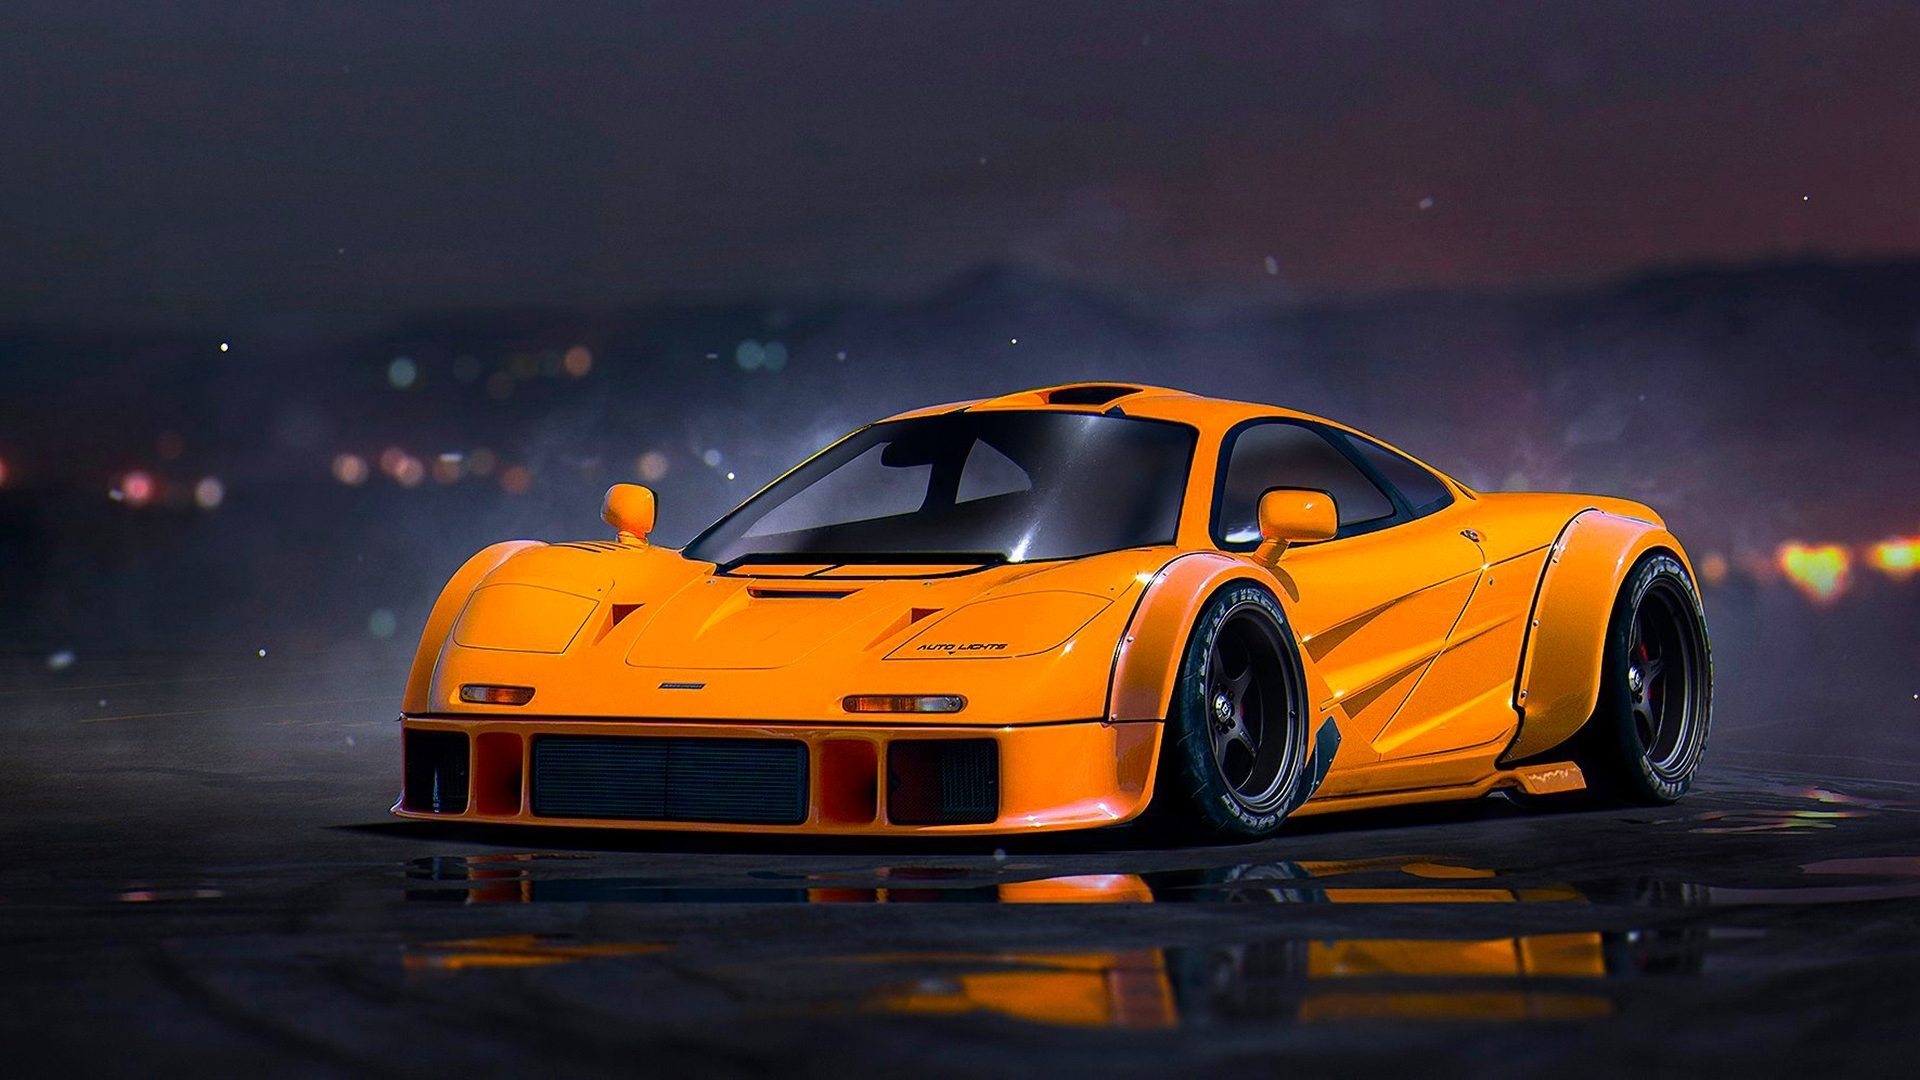 mclaren f1 wallpaper | hd car wallpapers